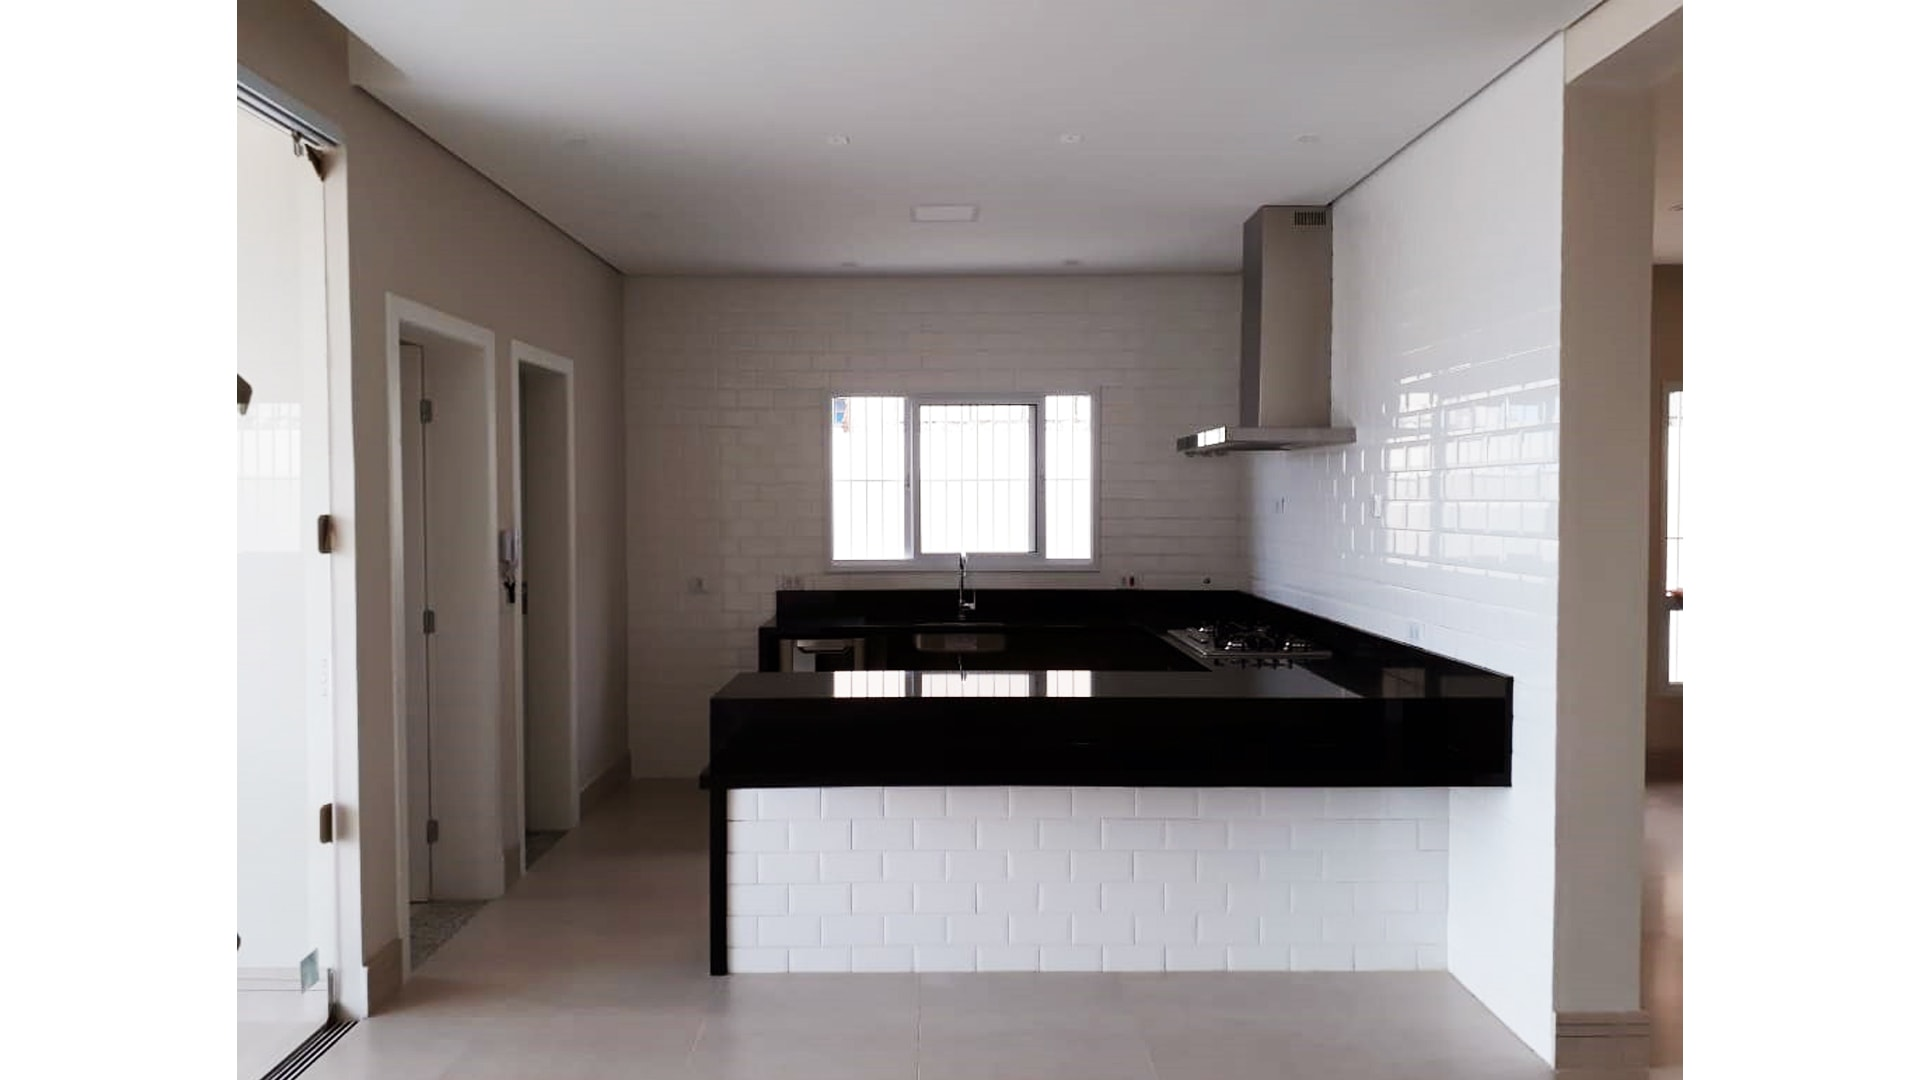 Residencial - 180m² - Itapevi - SP